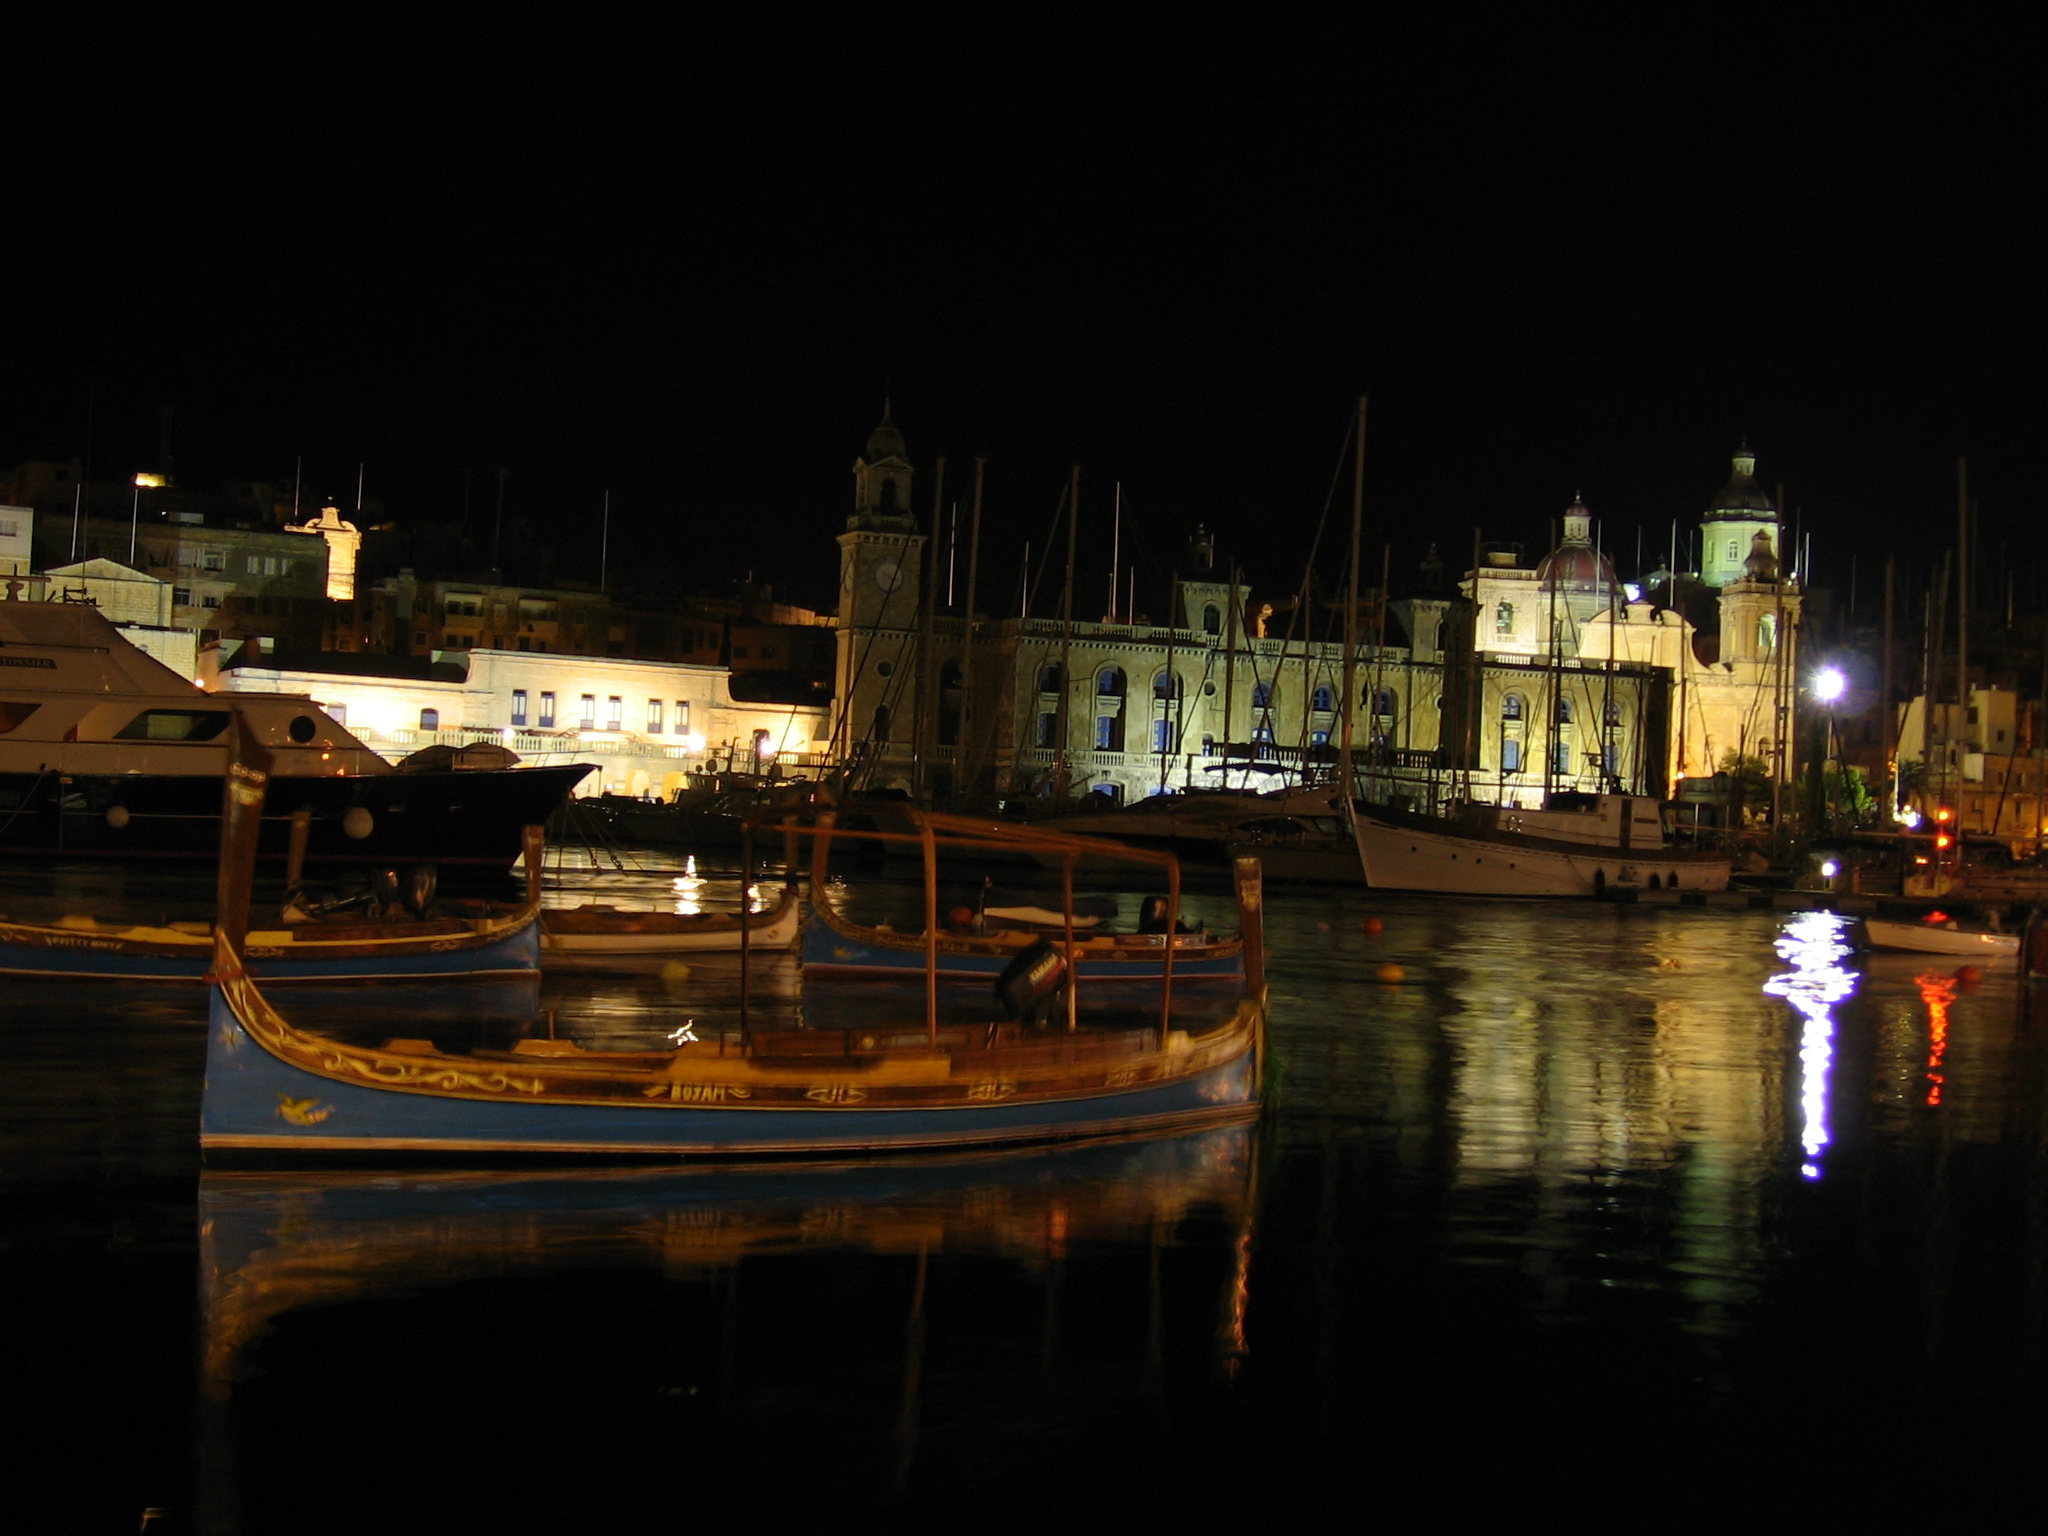 Malta at night